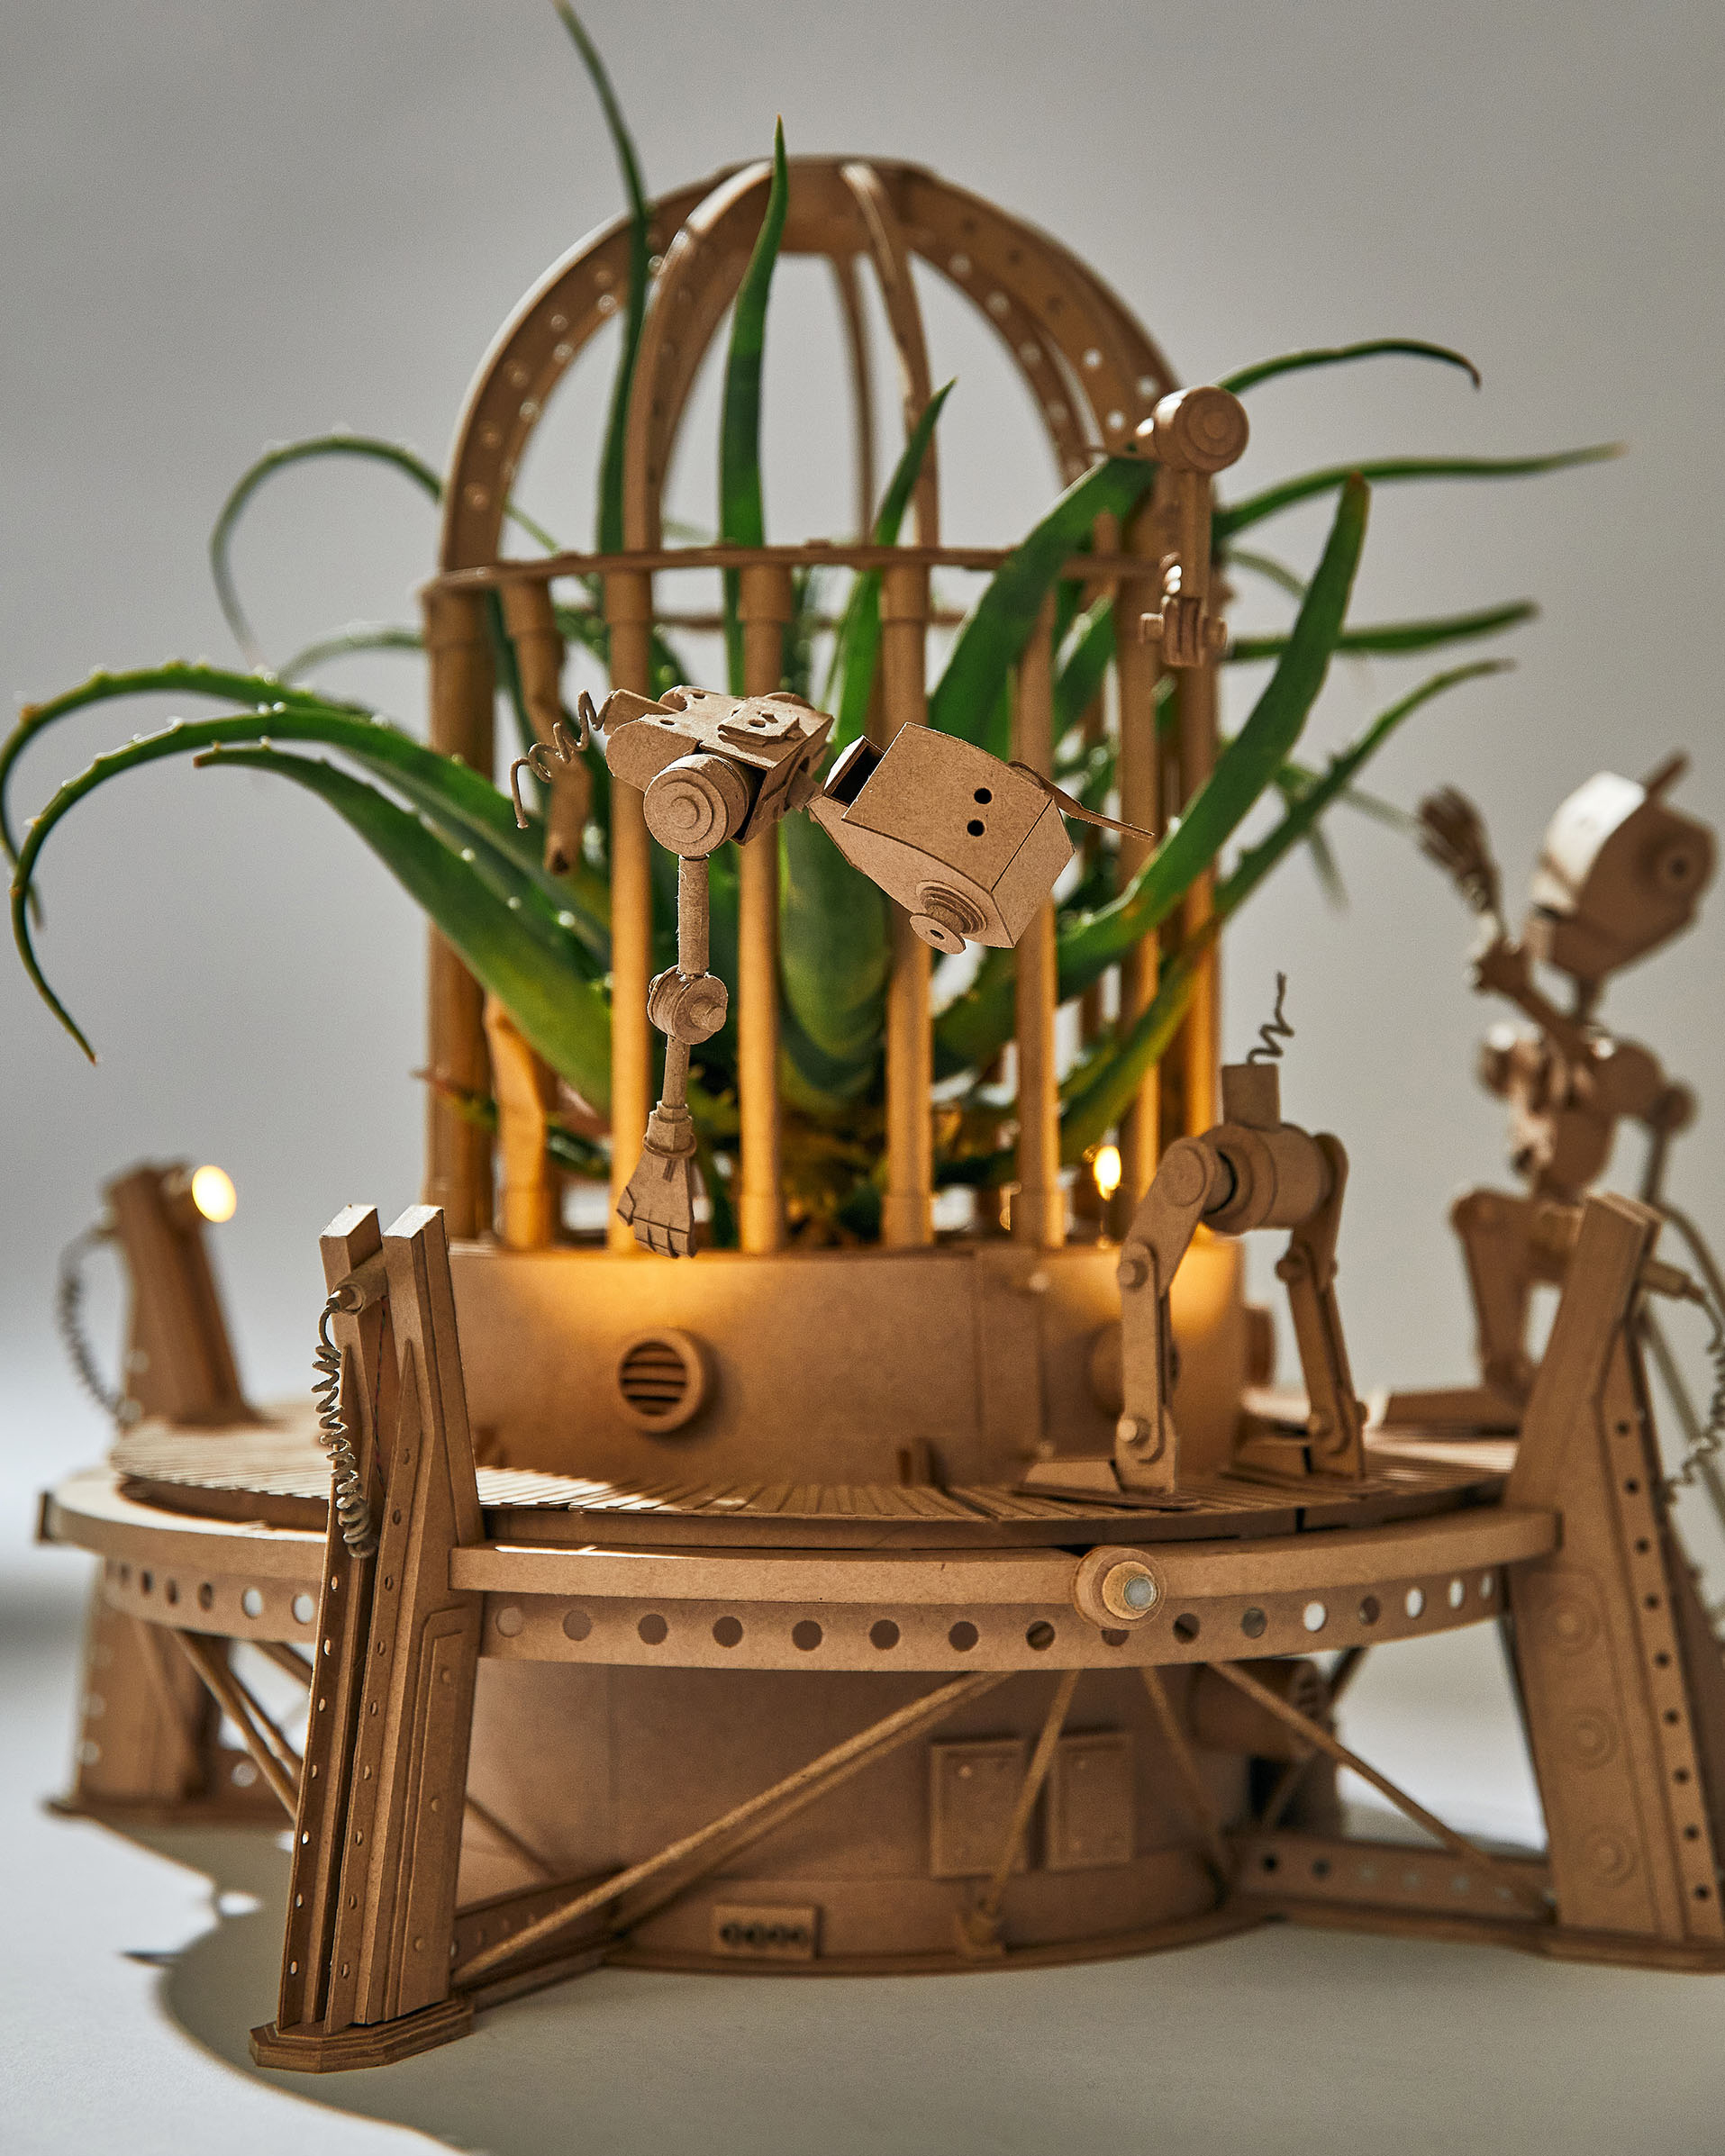 A Plant Overruns an Incredibly Intricate Cardboard Universe for Robots by Greg Olijnyk